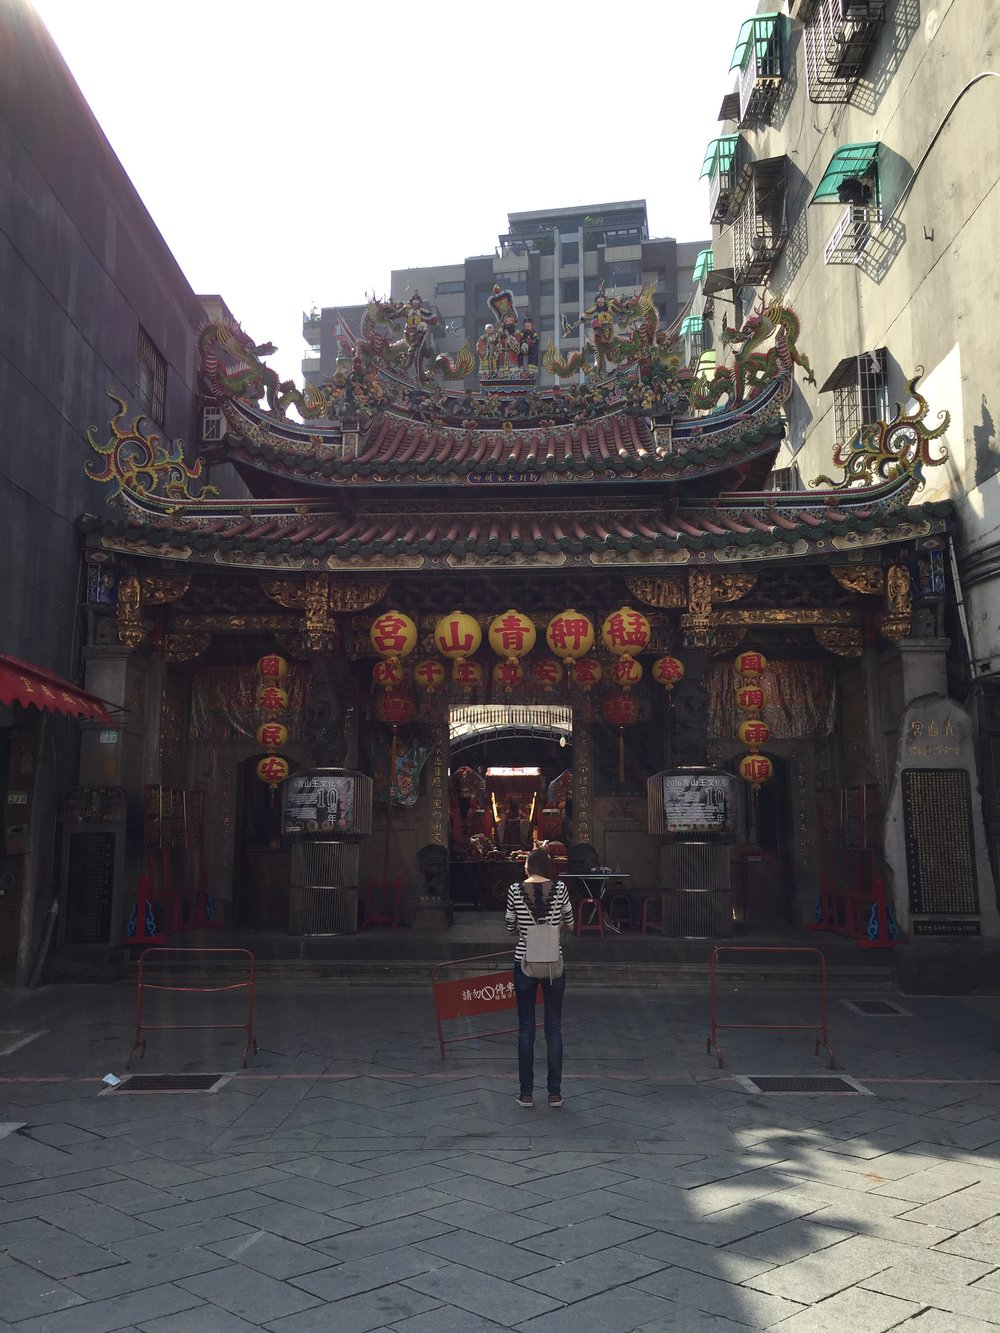 Bangka Qingshan Temple is in Wanhua district, near the more famous Longshan Temple, in Taiwan. It was built in the 1800s and is one of a million local temples found in Taipei. More relaxing than the popular tourist spots, especially if you plan to meditate or pray.